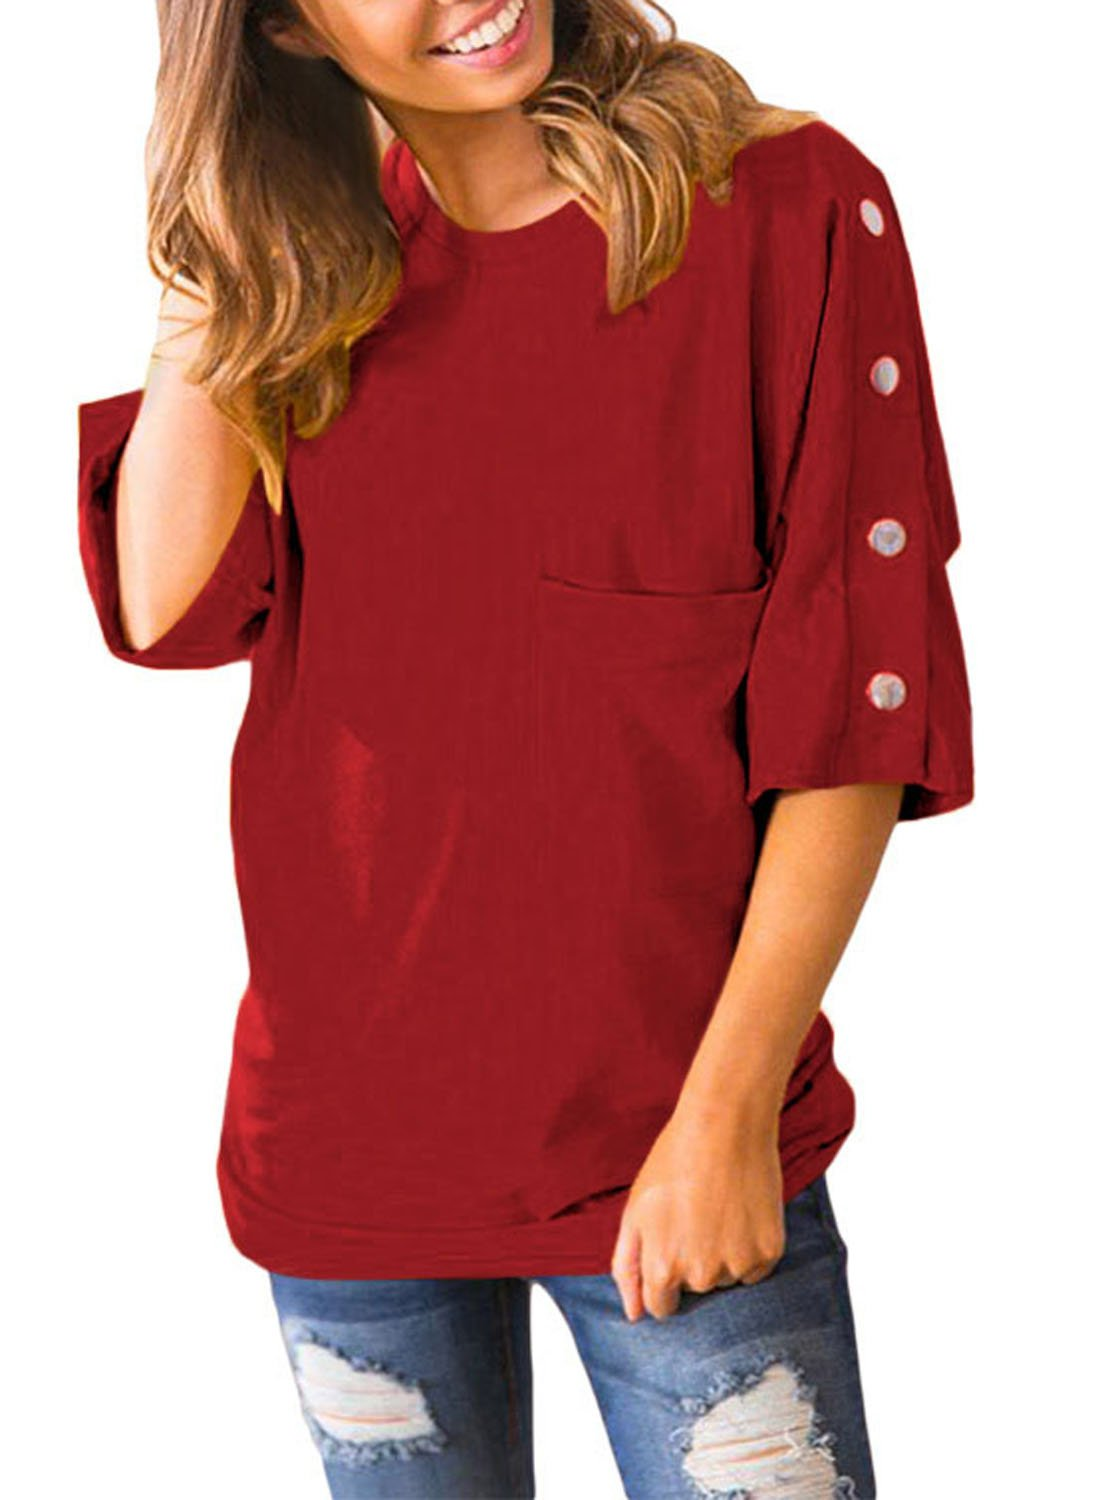 Azokoe 2018 Womens Tops Tunic Summer Fashion Casual Shirts 3 4 Sleeves Buttons up Front Pockets Blouses Juniors Wine Medium